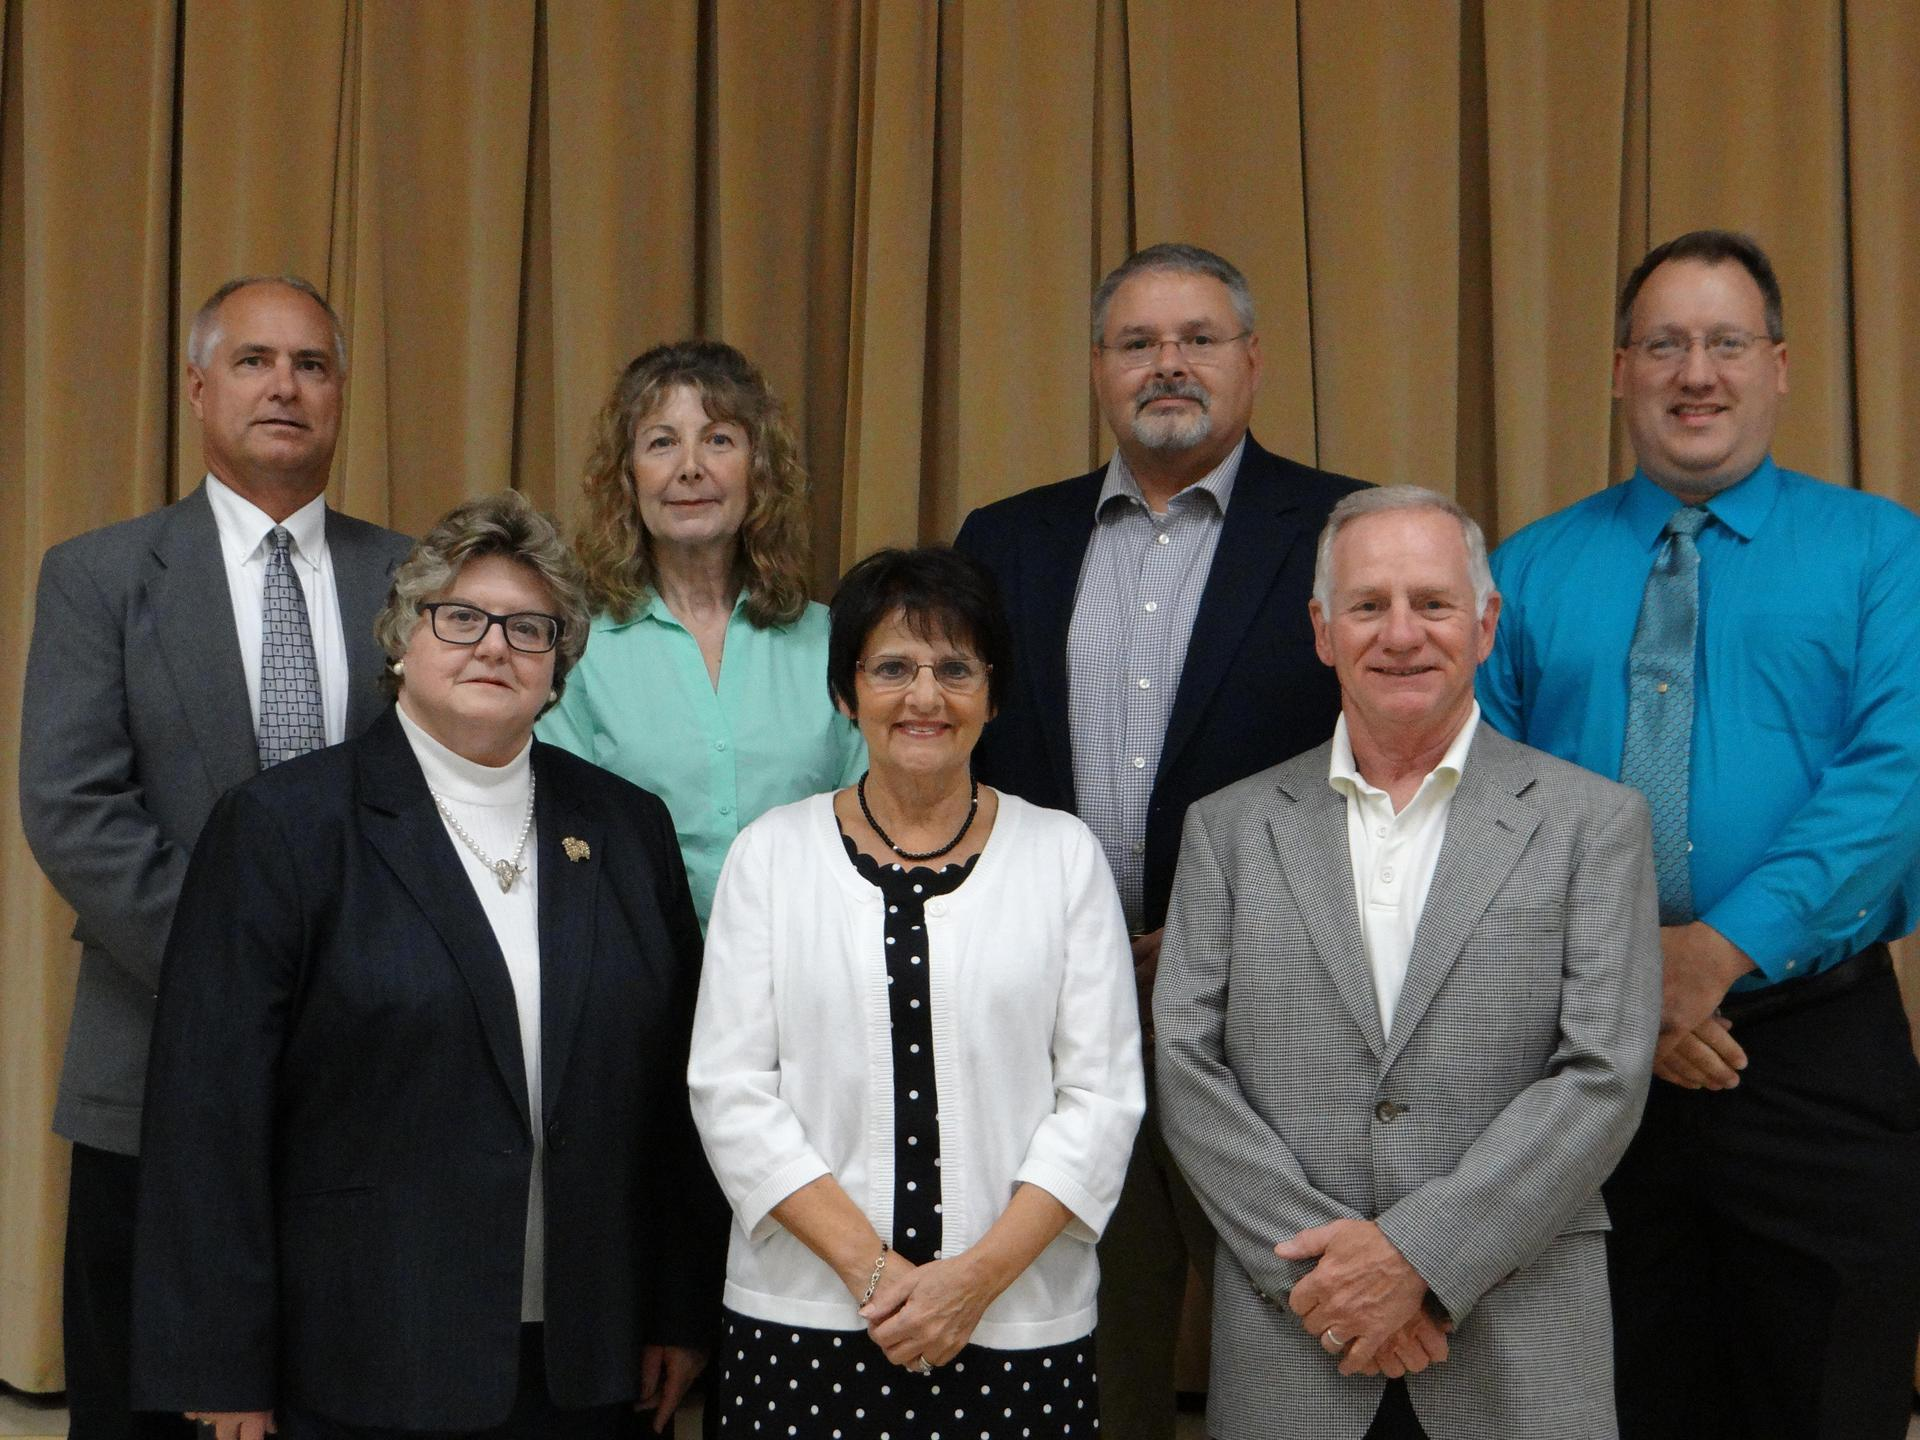 2018 Penns Valley Education Board photo